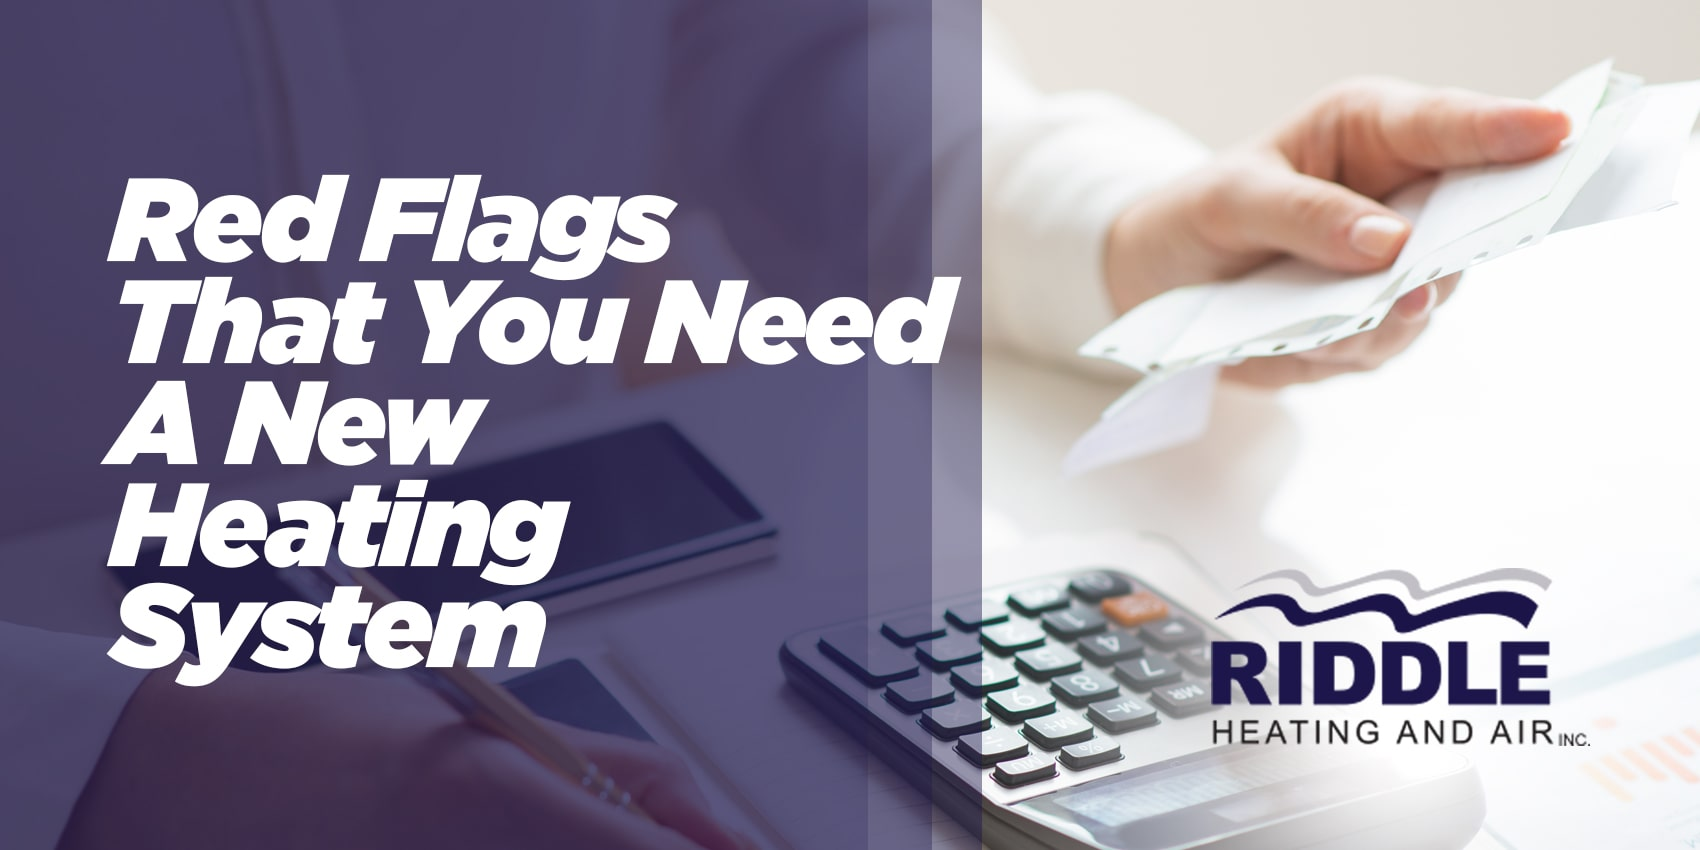 Red Flags that You Need a New Heating System